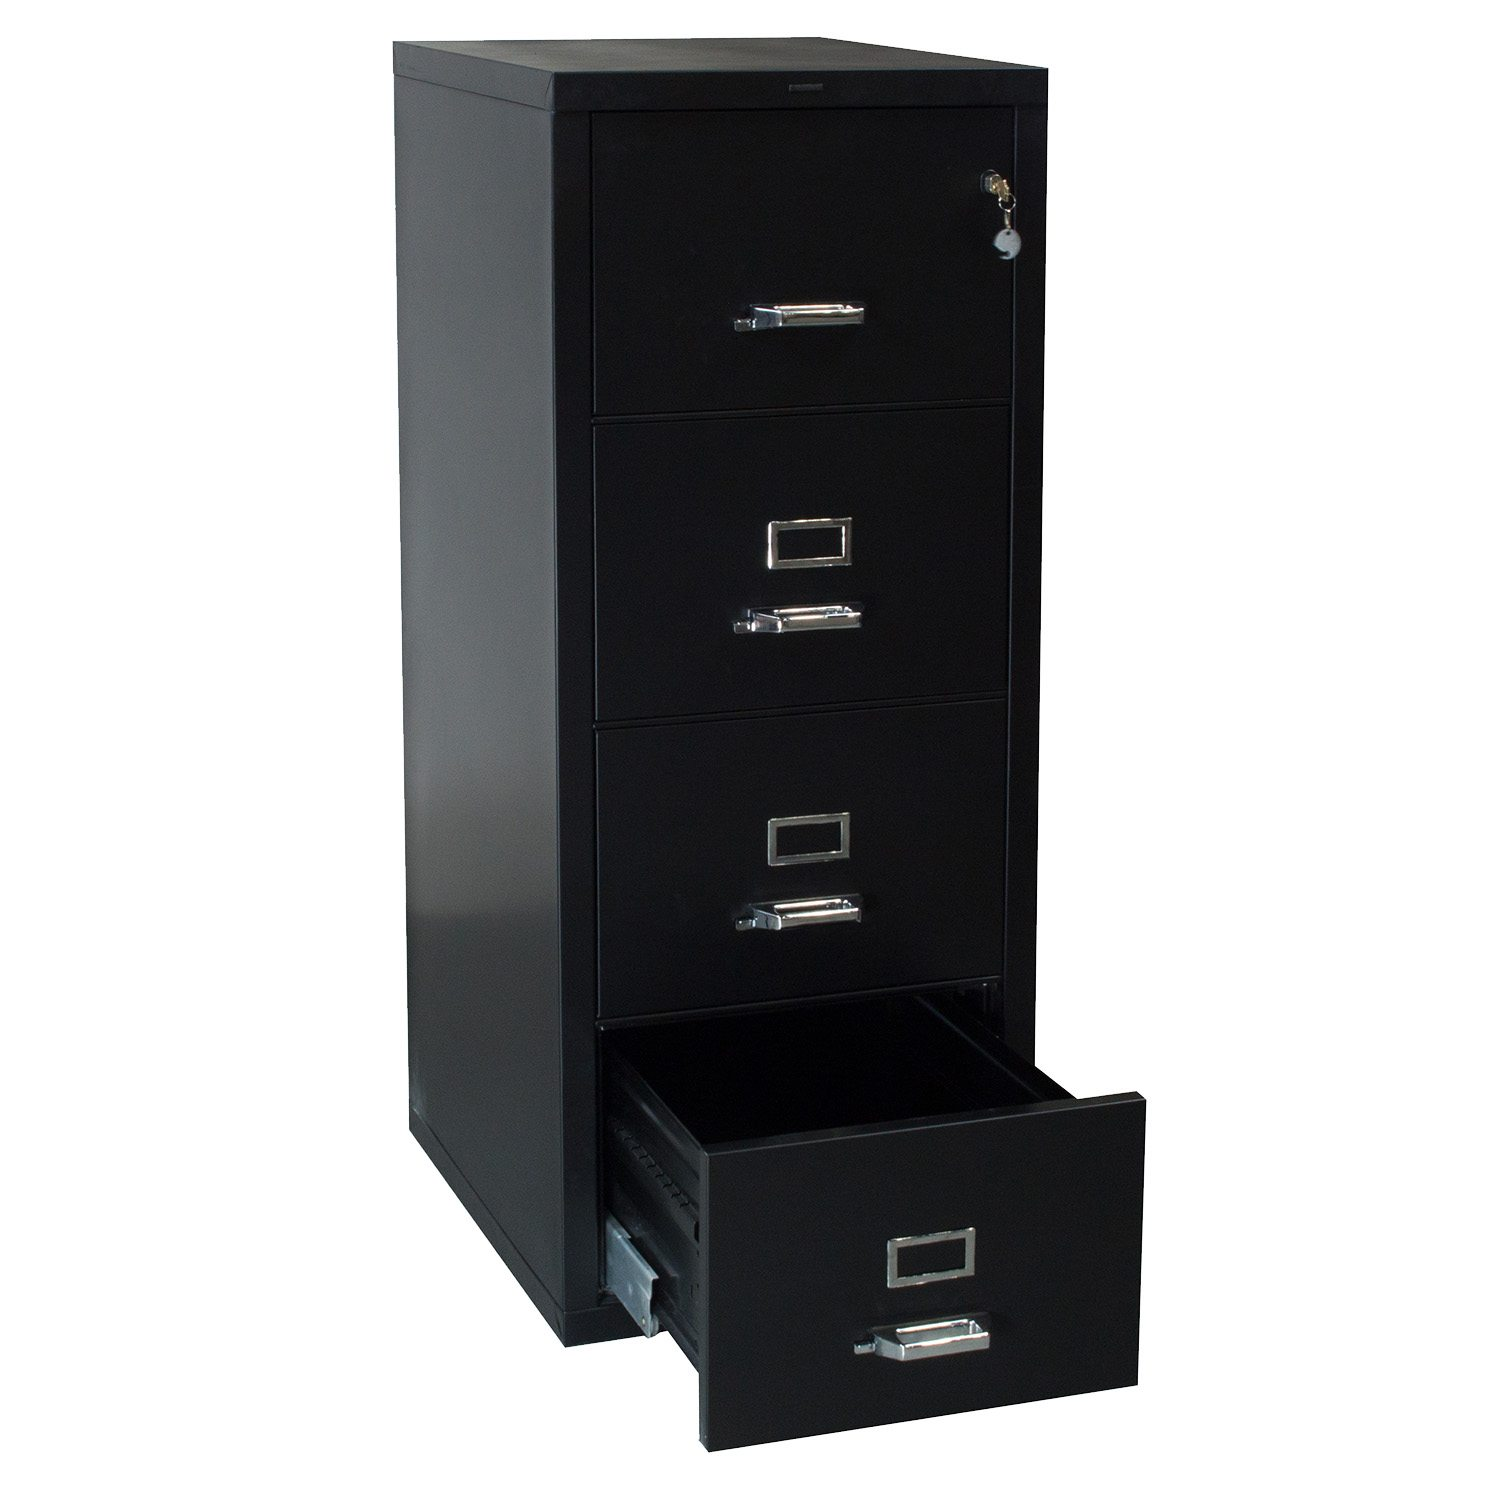 hon filing cabinets hon used sized vertical file cabinet black 16590